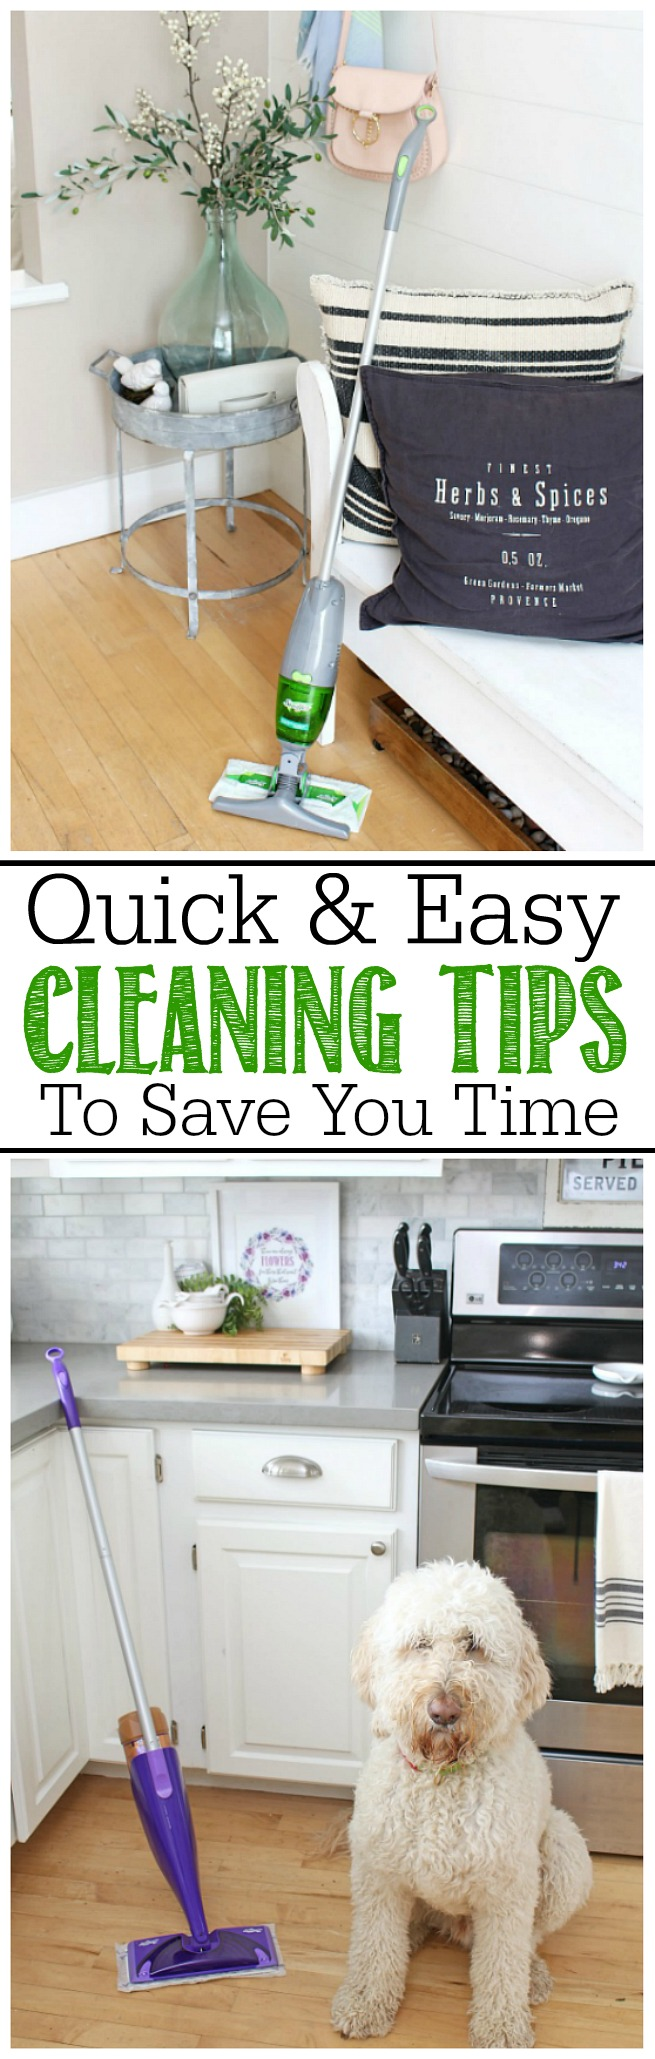 SAVE TIME with these simple cleaning tips.